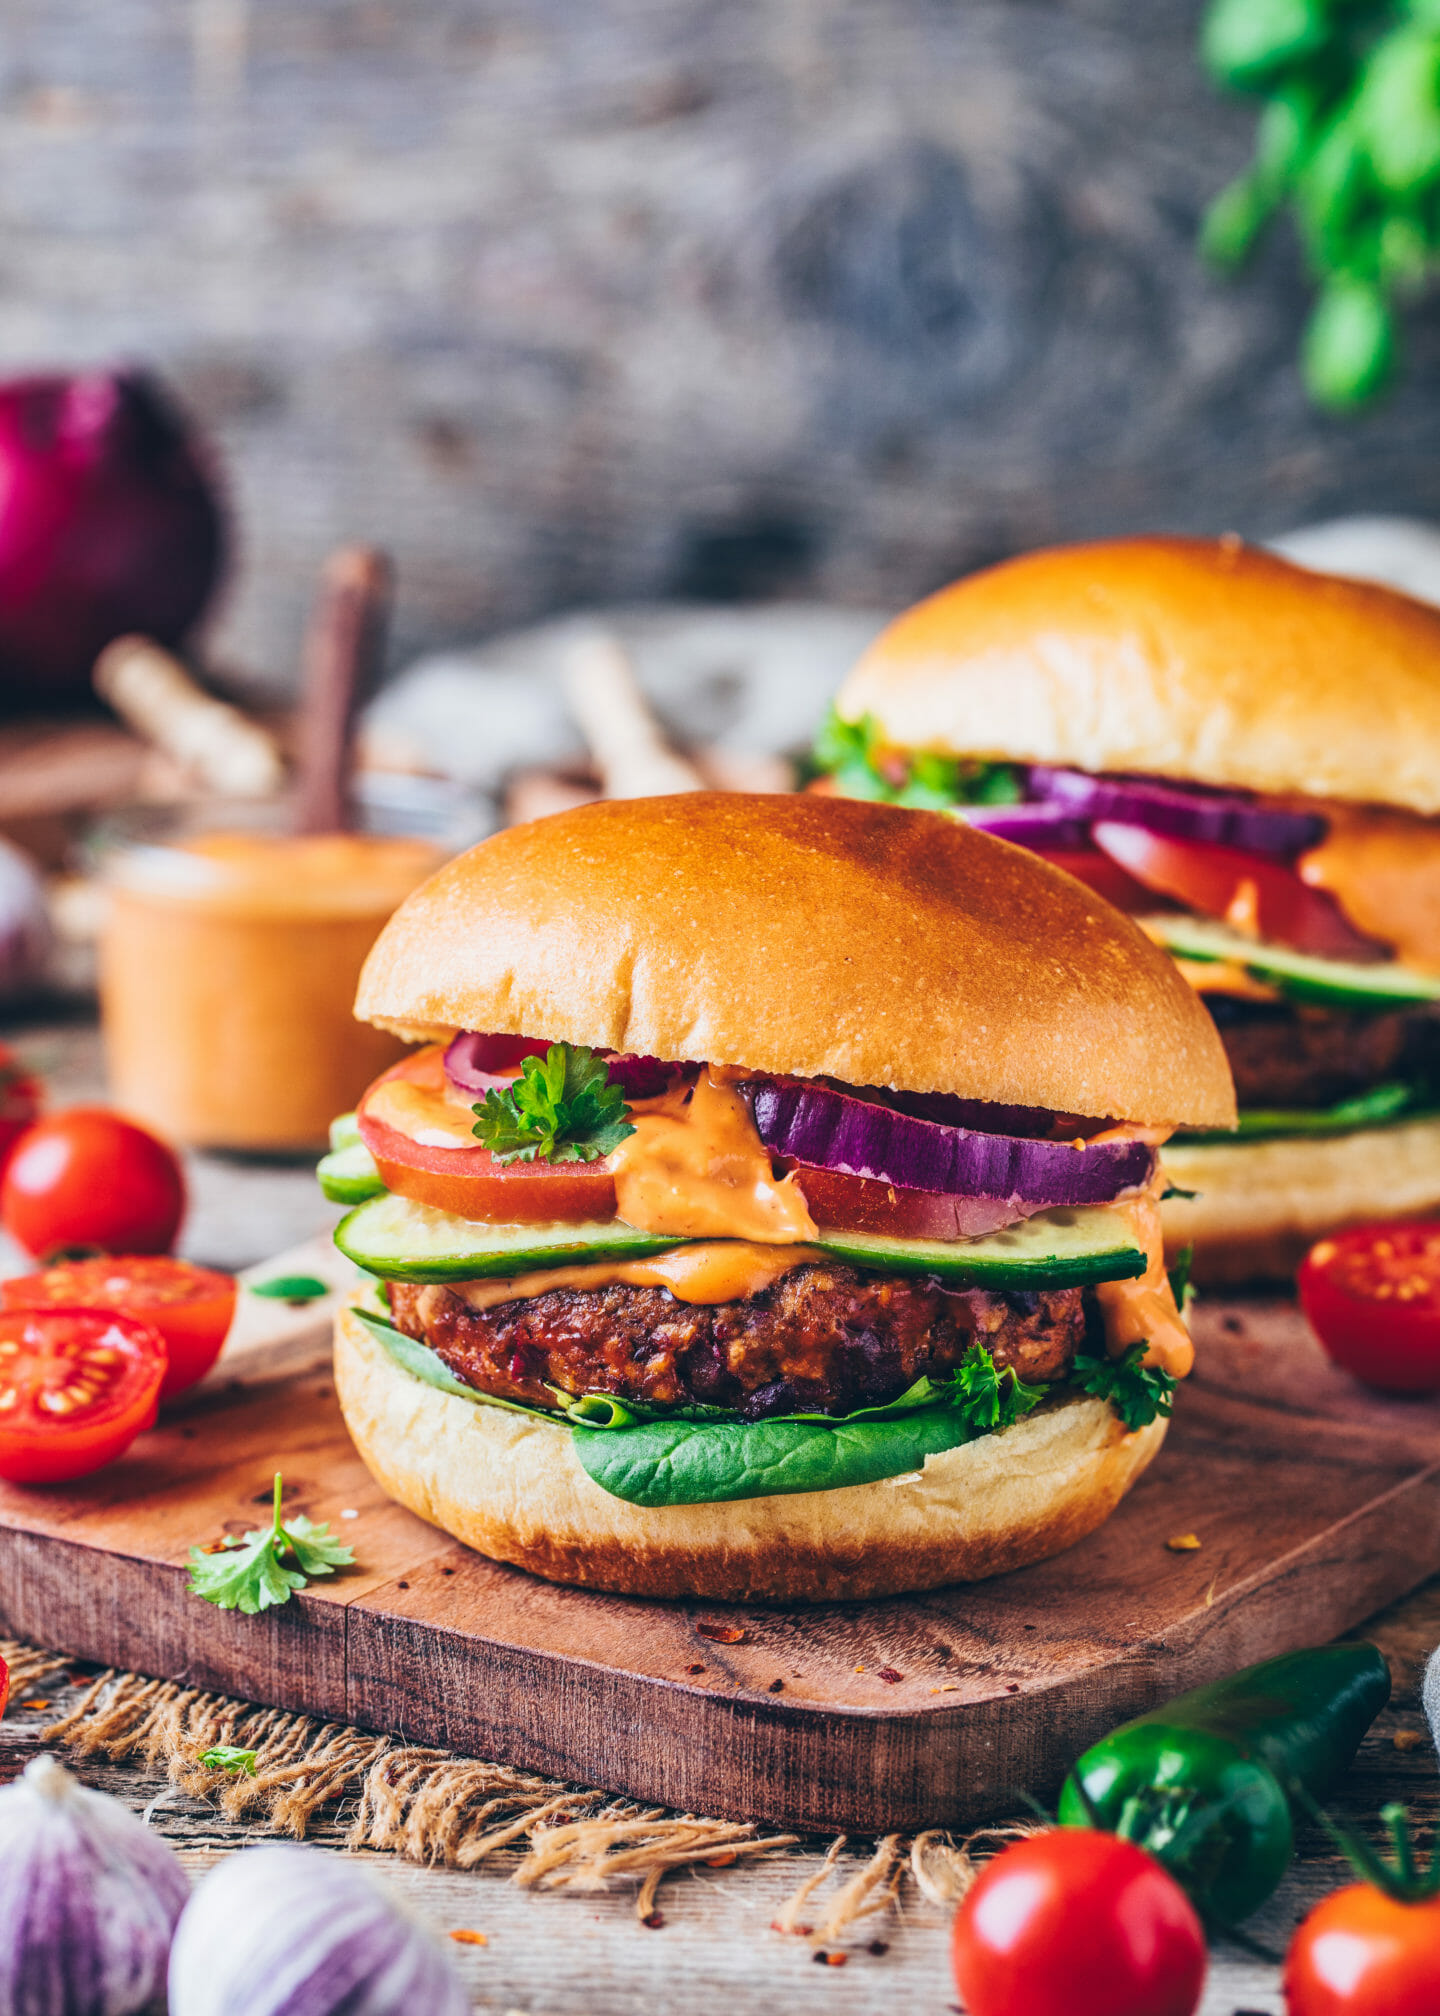 Best Vegan Burger with tomato mayonnaise sauce